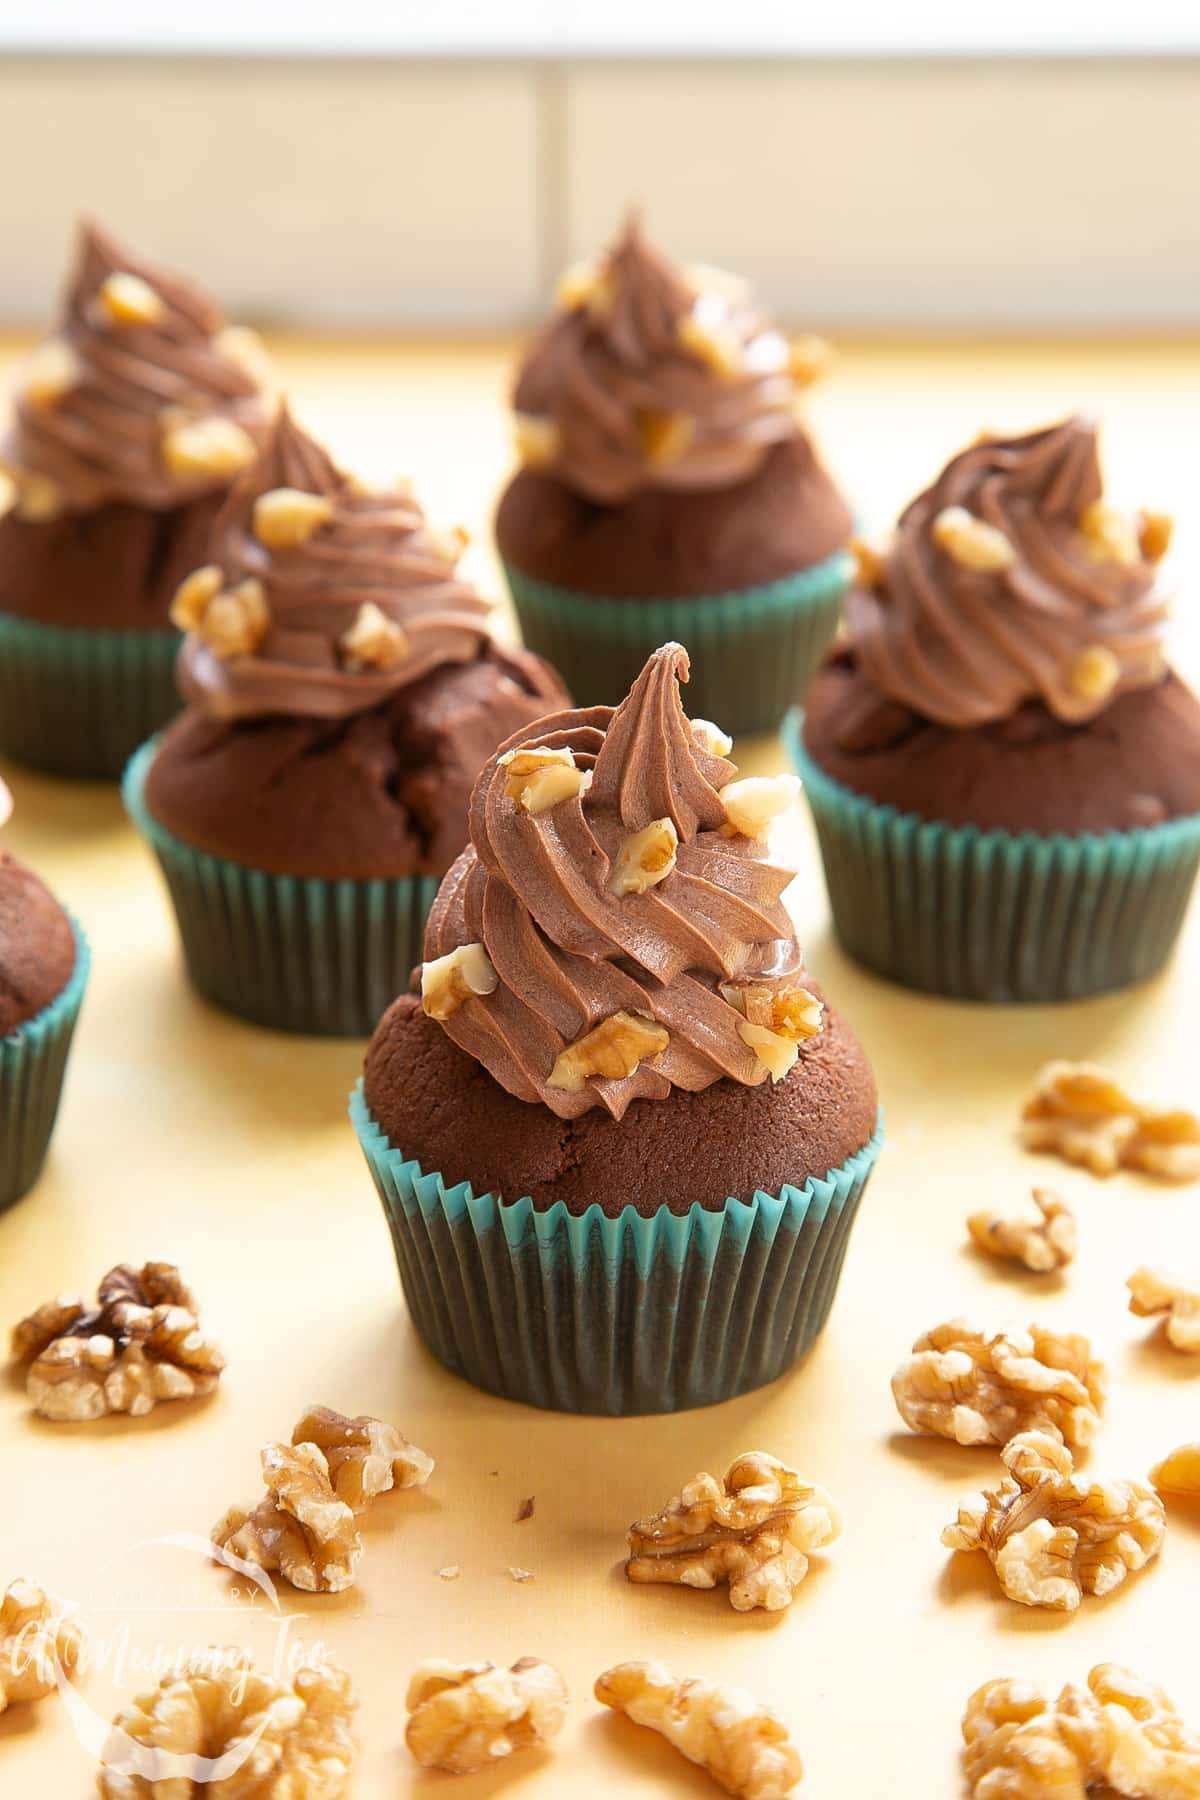 Chocolate walnut cupcakes decorated with creamy chocolate frosting. Walnuts are scattered around the cupcakes.